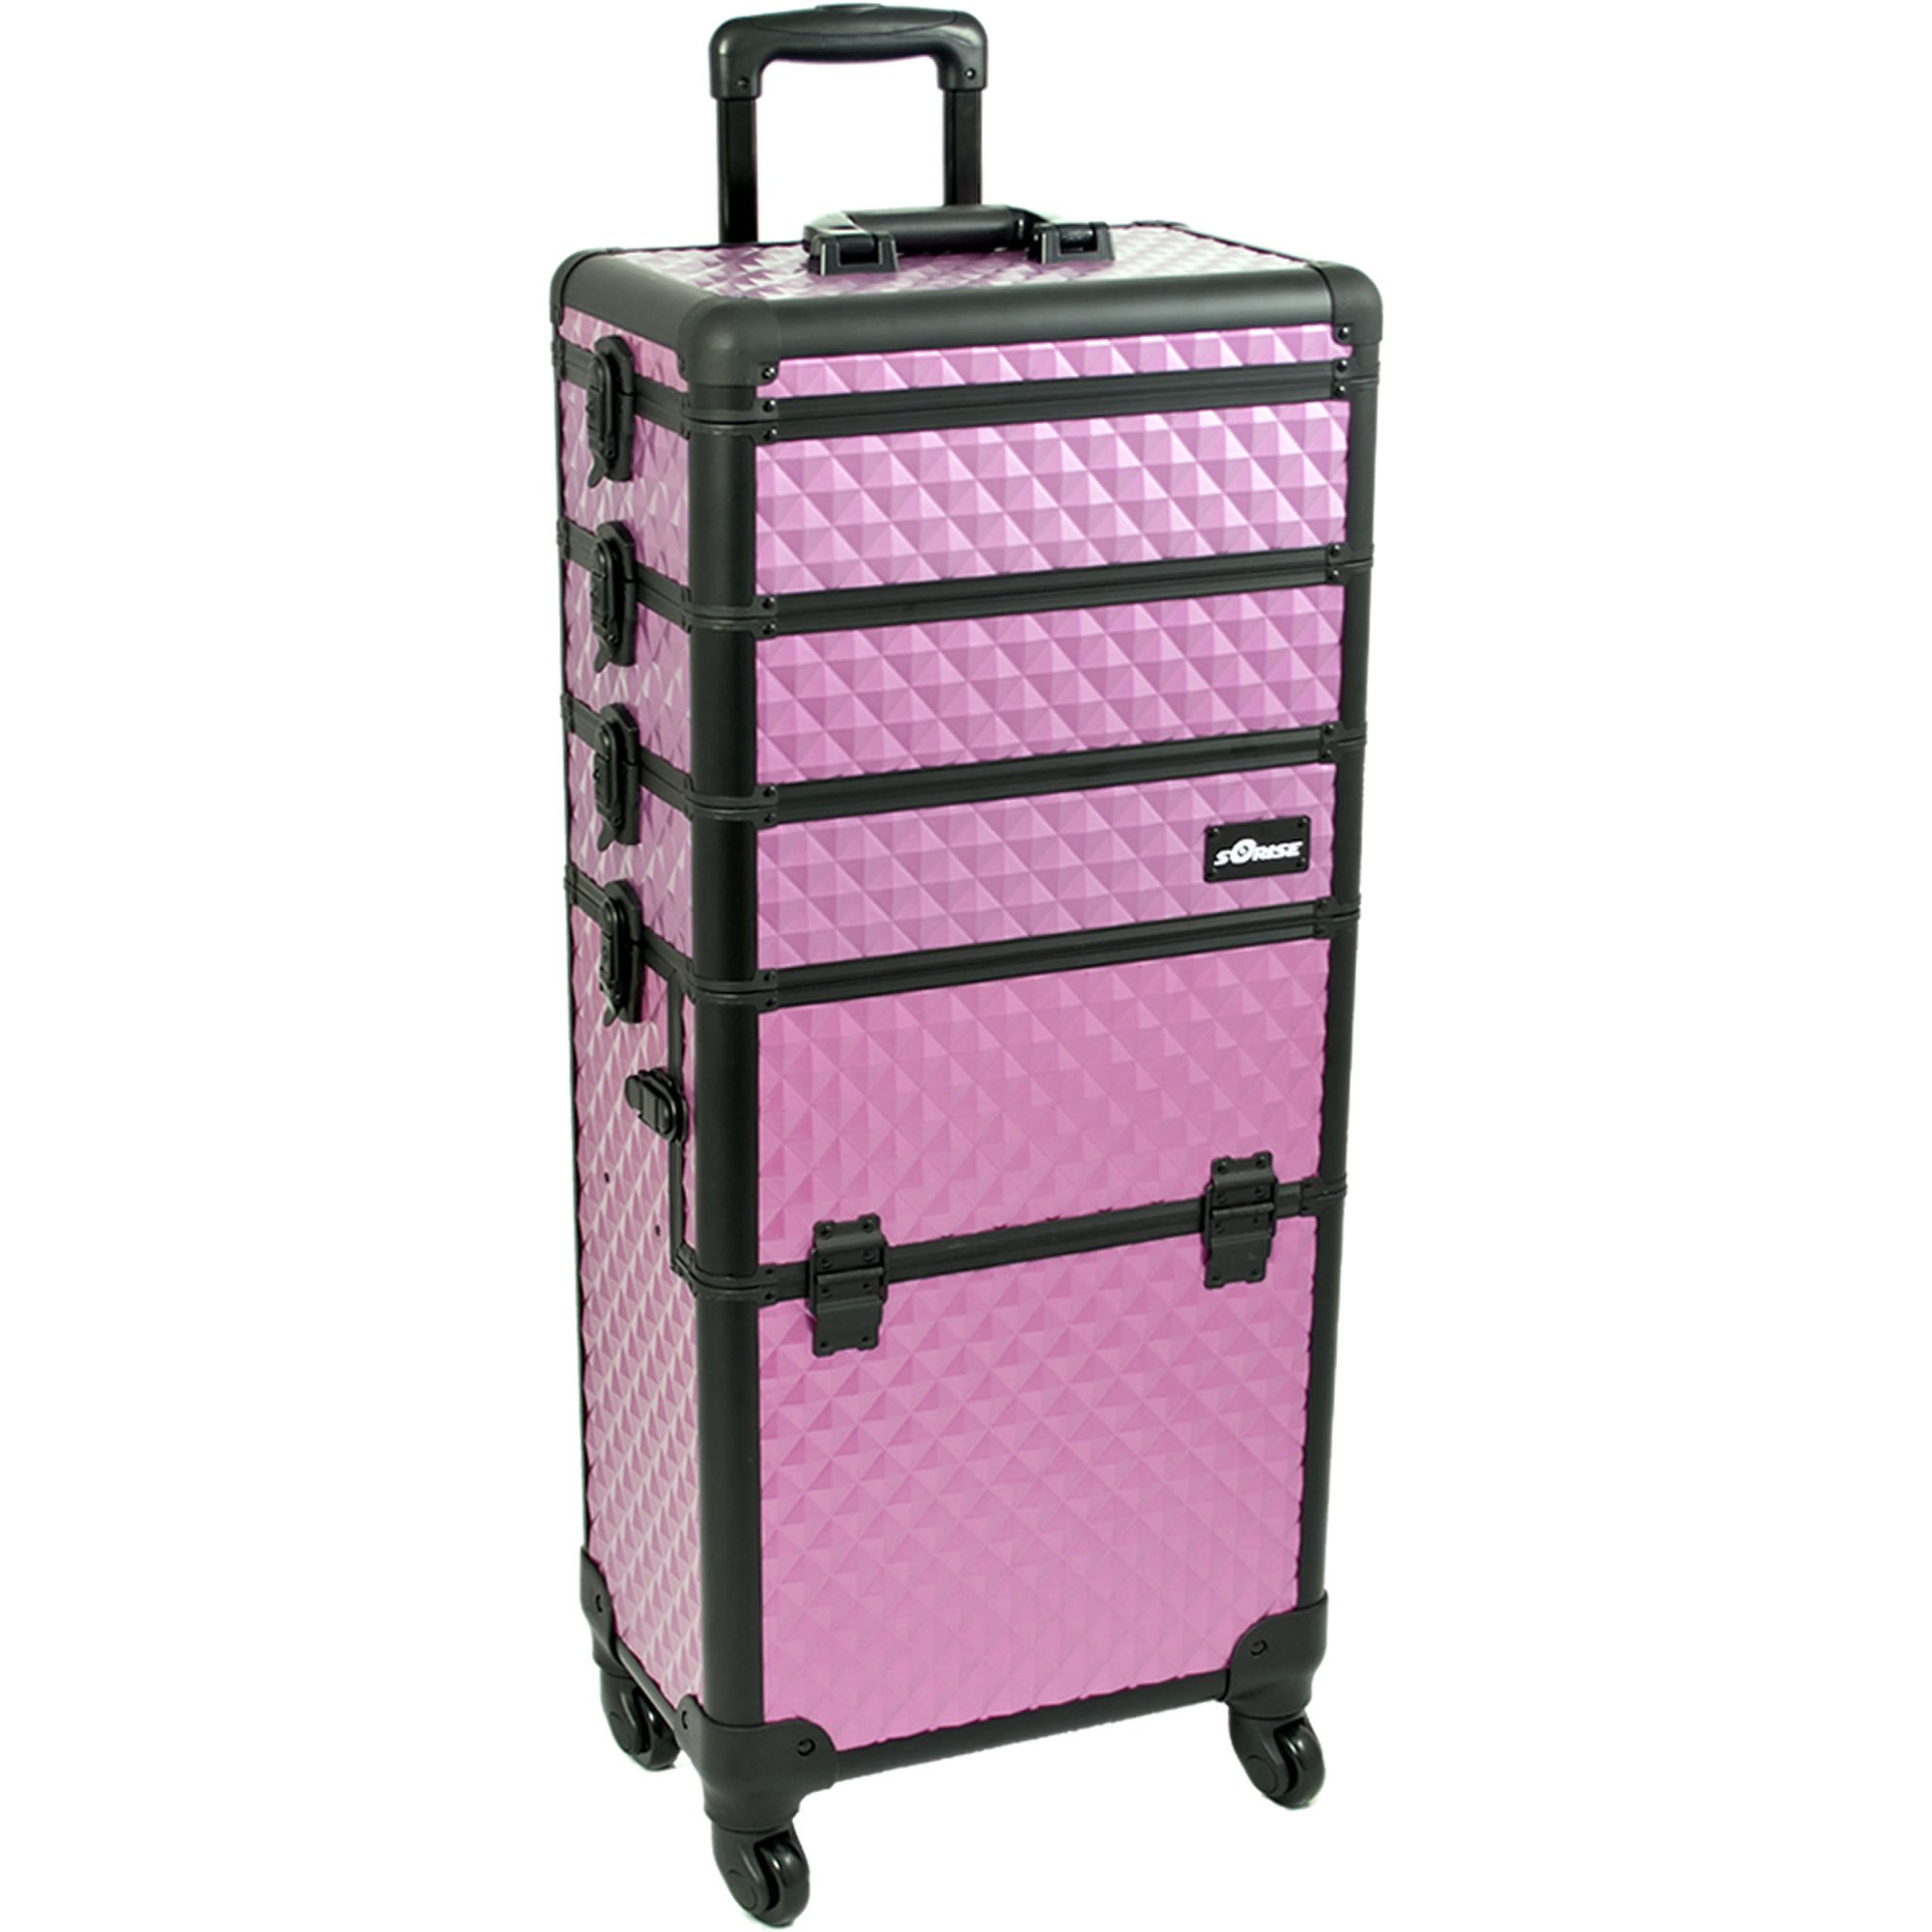 SUNRISE Makeup Case on Wheels 4 in 1 Professional Organizer I3361 Aluminum, 3 Stackable Trays with Adjustable Dividers, Locking with Mirror, Purple Diamond